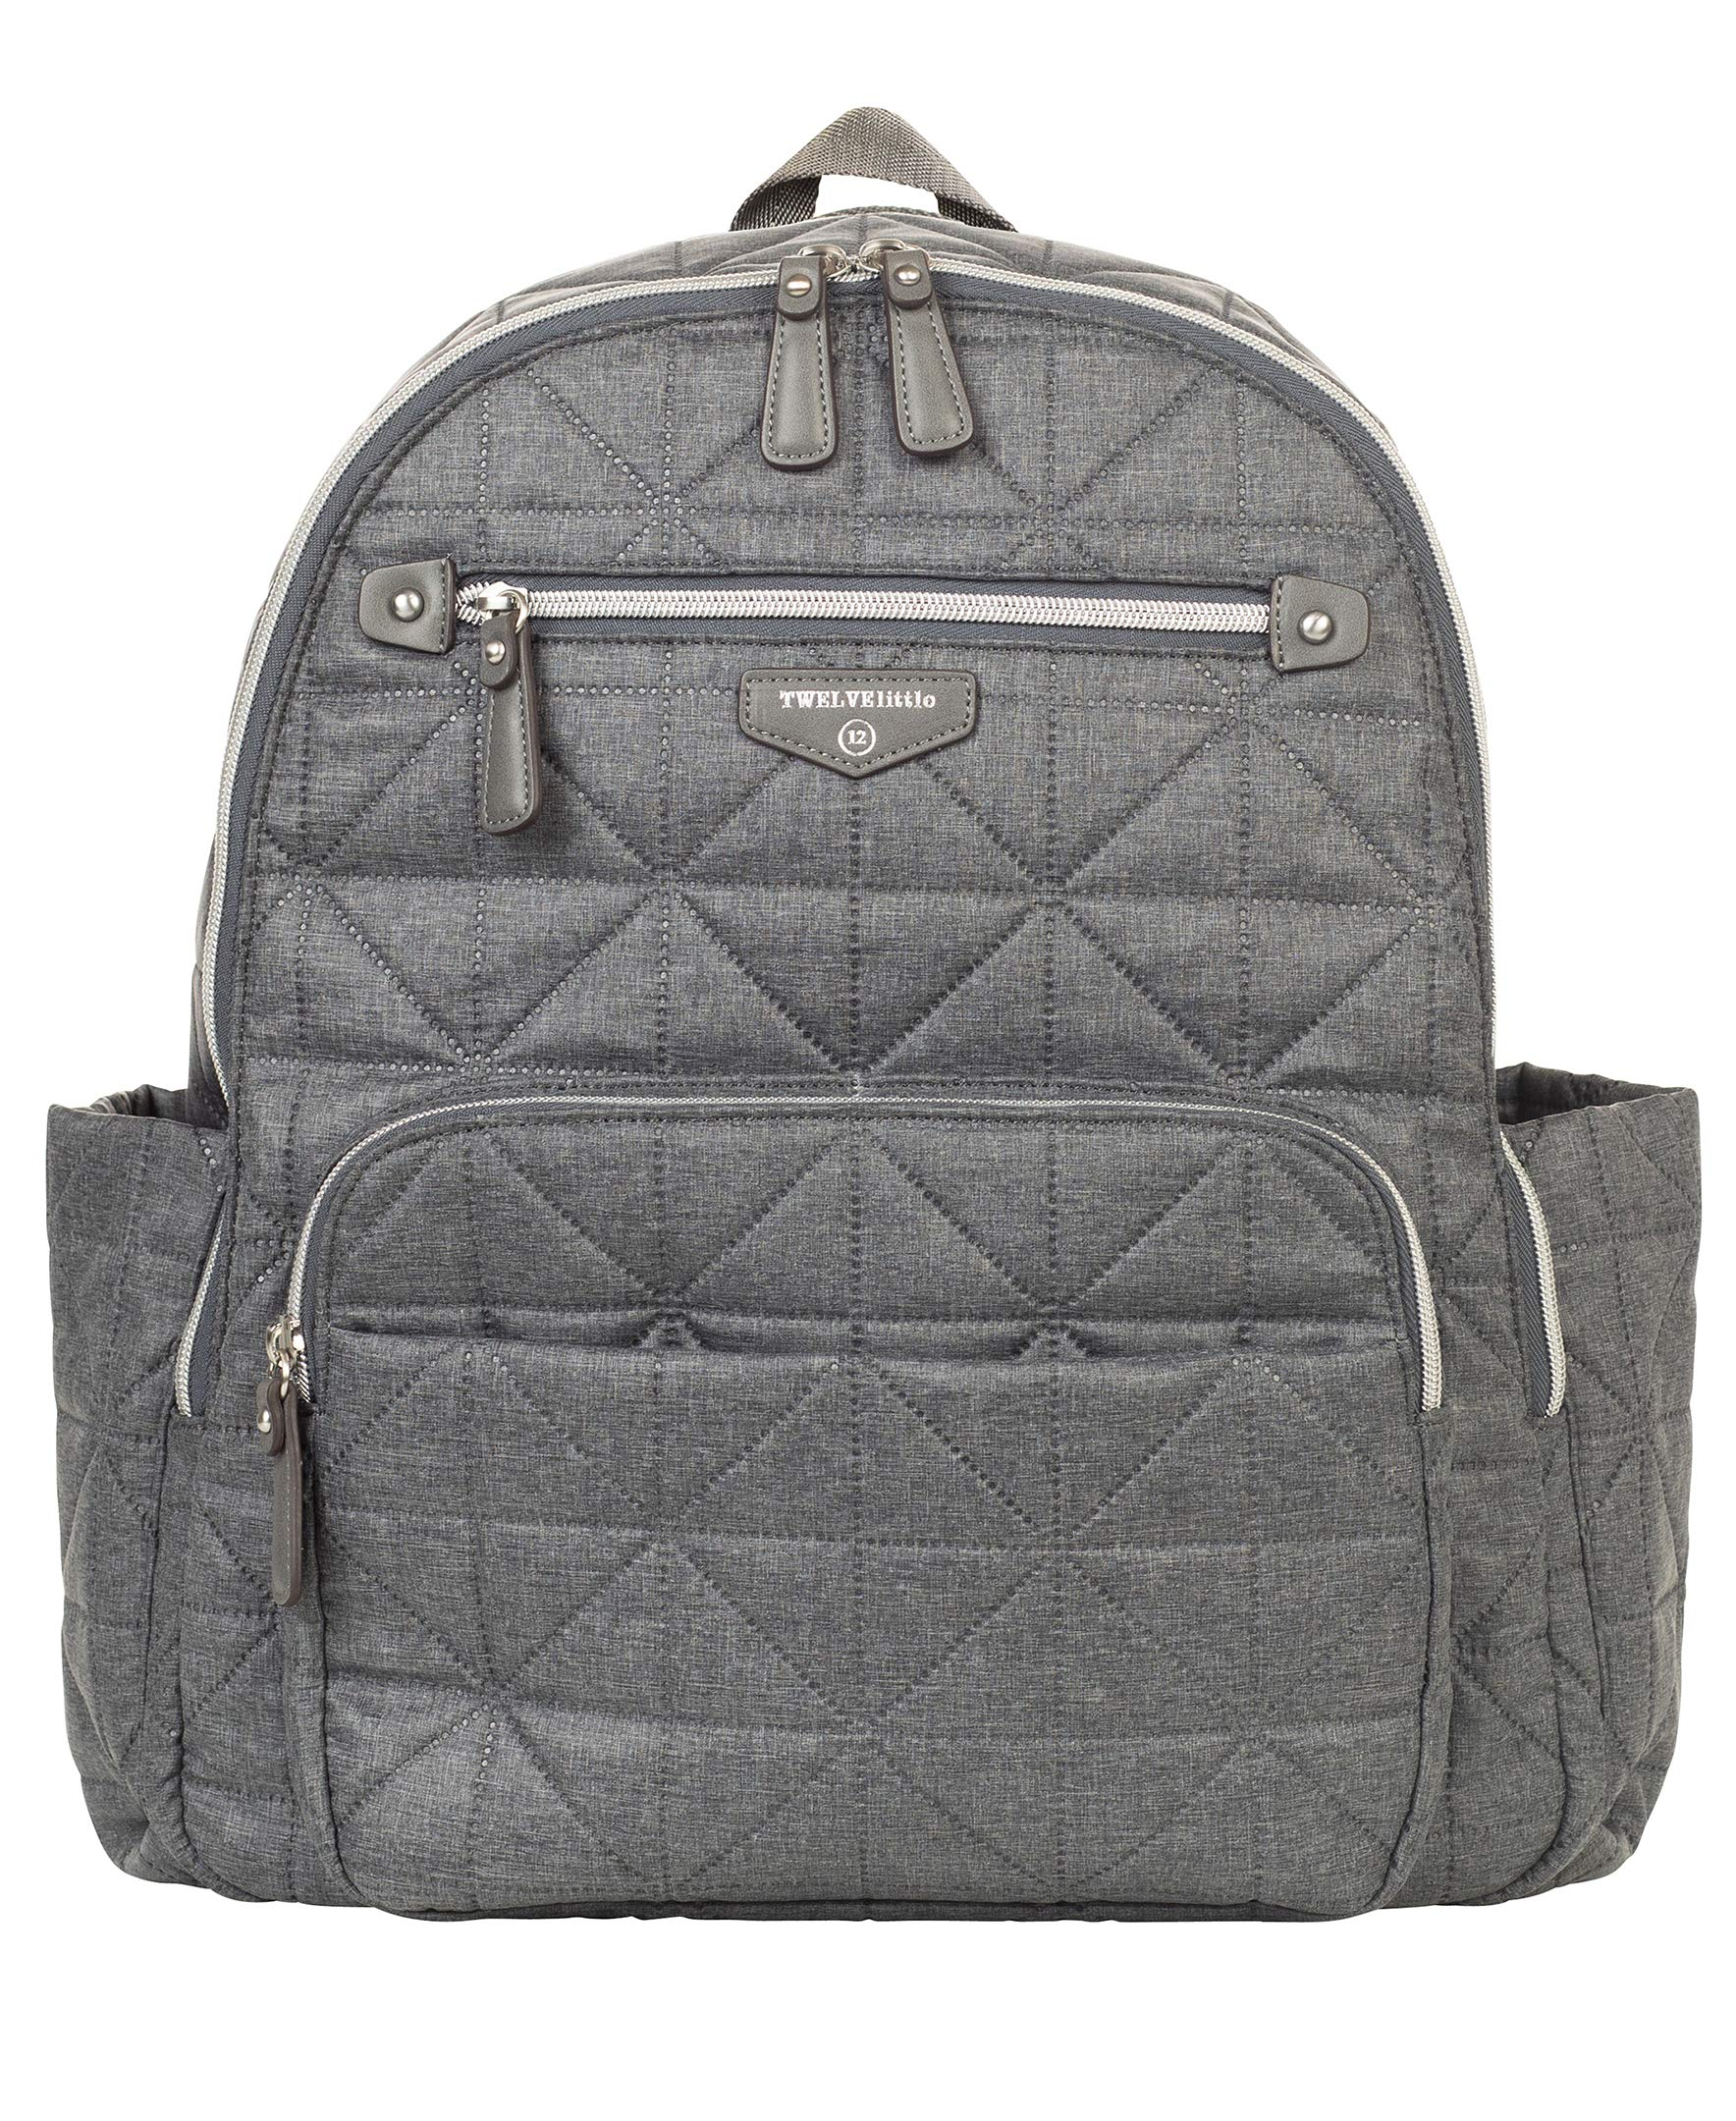 TWELVElittle Companion DiaperBag Backpack 2.0 (Denim) - Fashionable Diaper Bag Backpack for Moms or Dads, Diaper Backpack with Lots of Pockets to Carry Baby Products